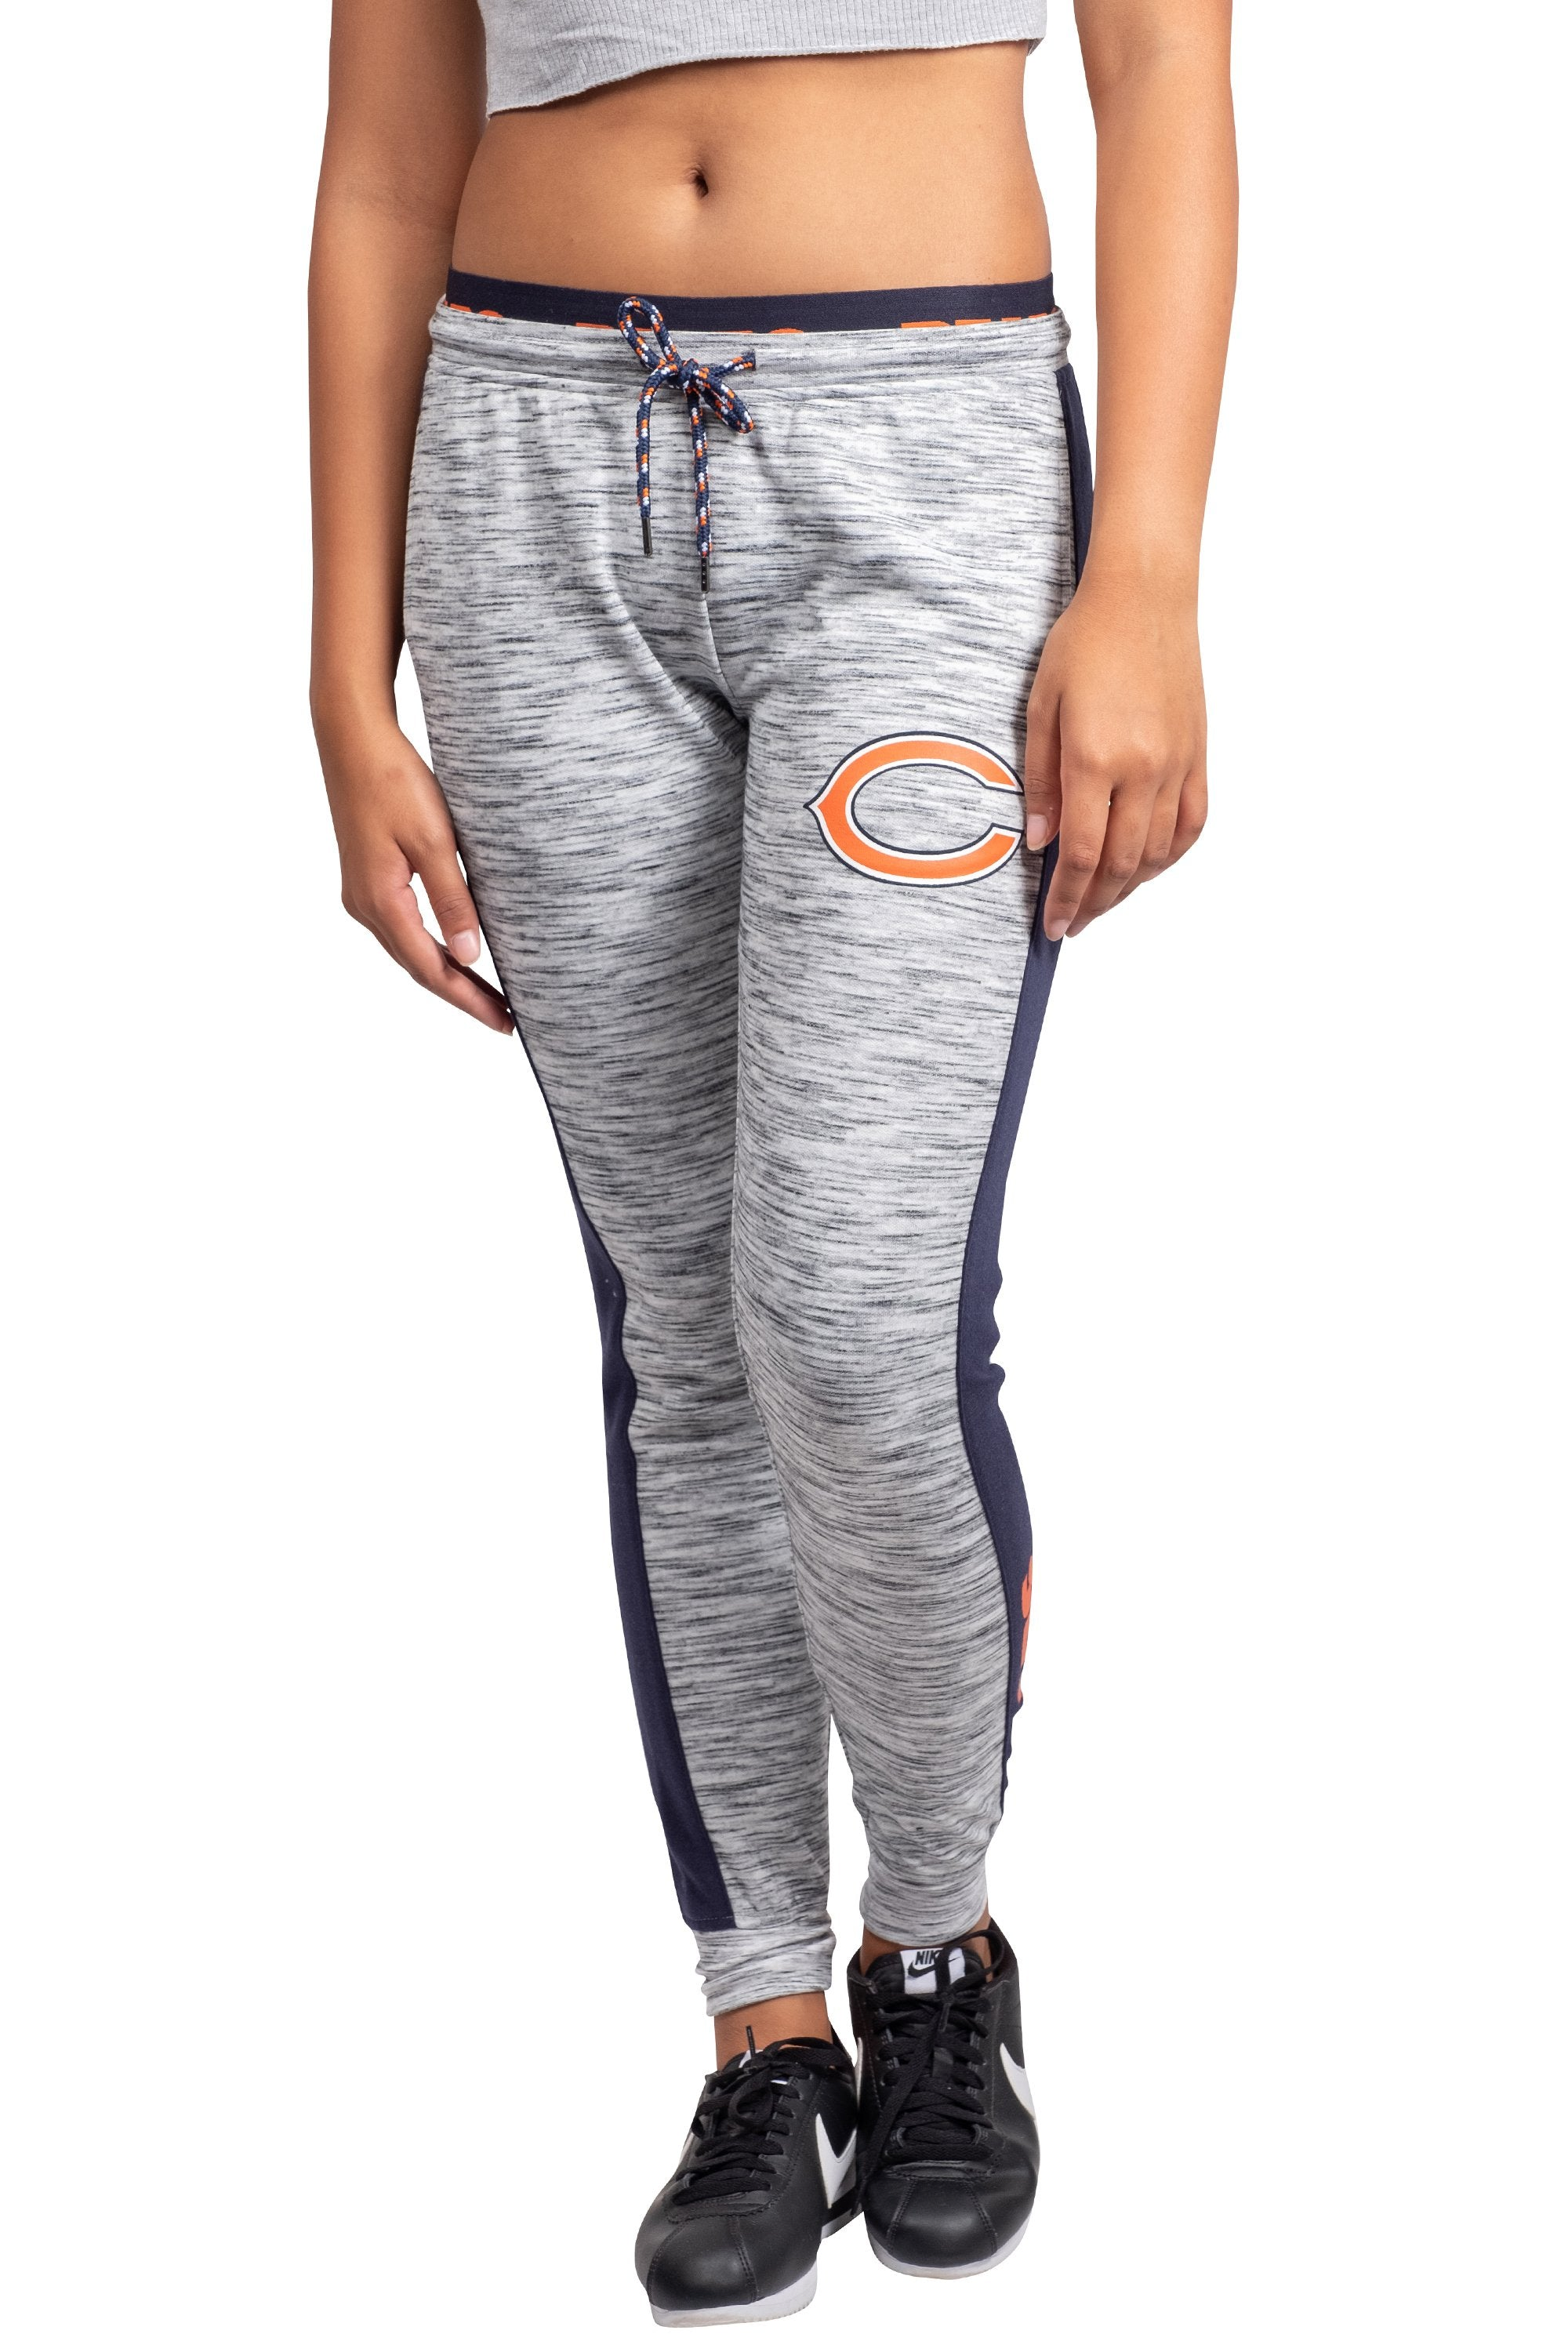 NFL Chicago Bears Women's Basic Jogger|Chicago Bears